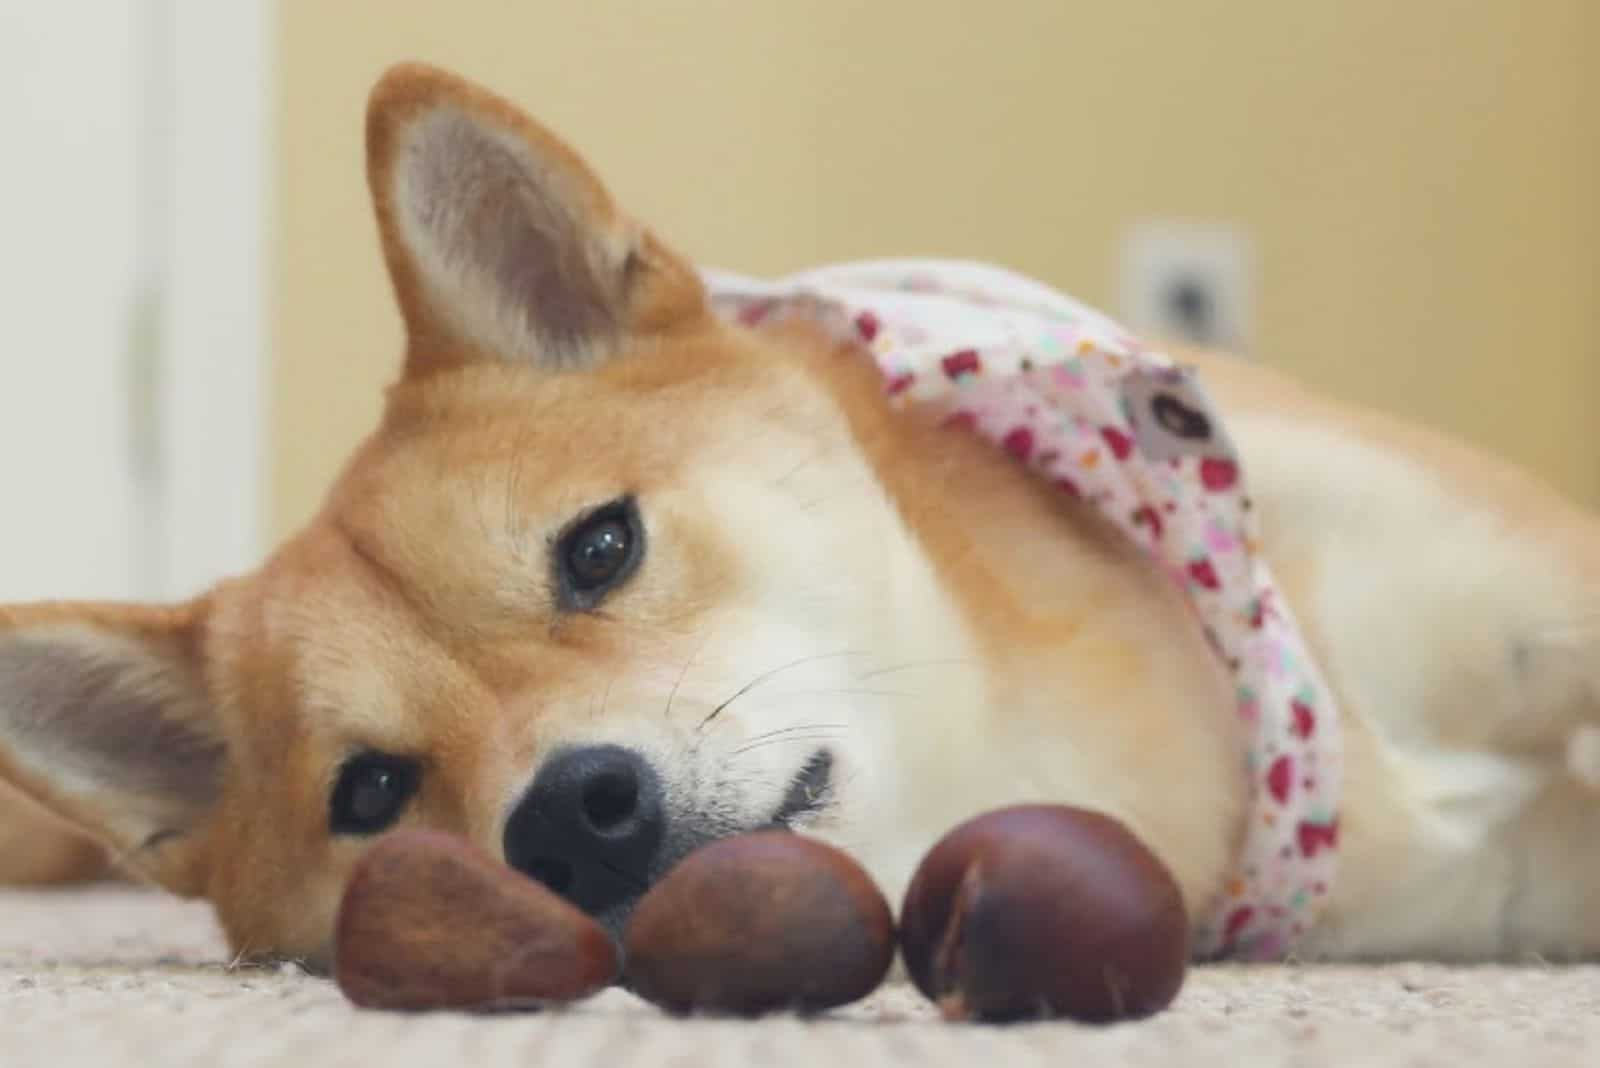 the akita inu lies and looks at the three chestnuts in front of him